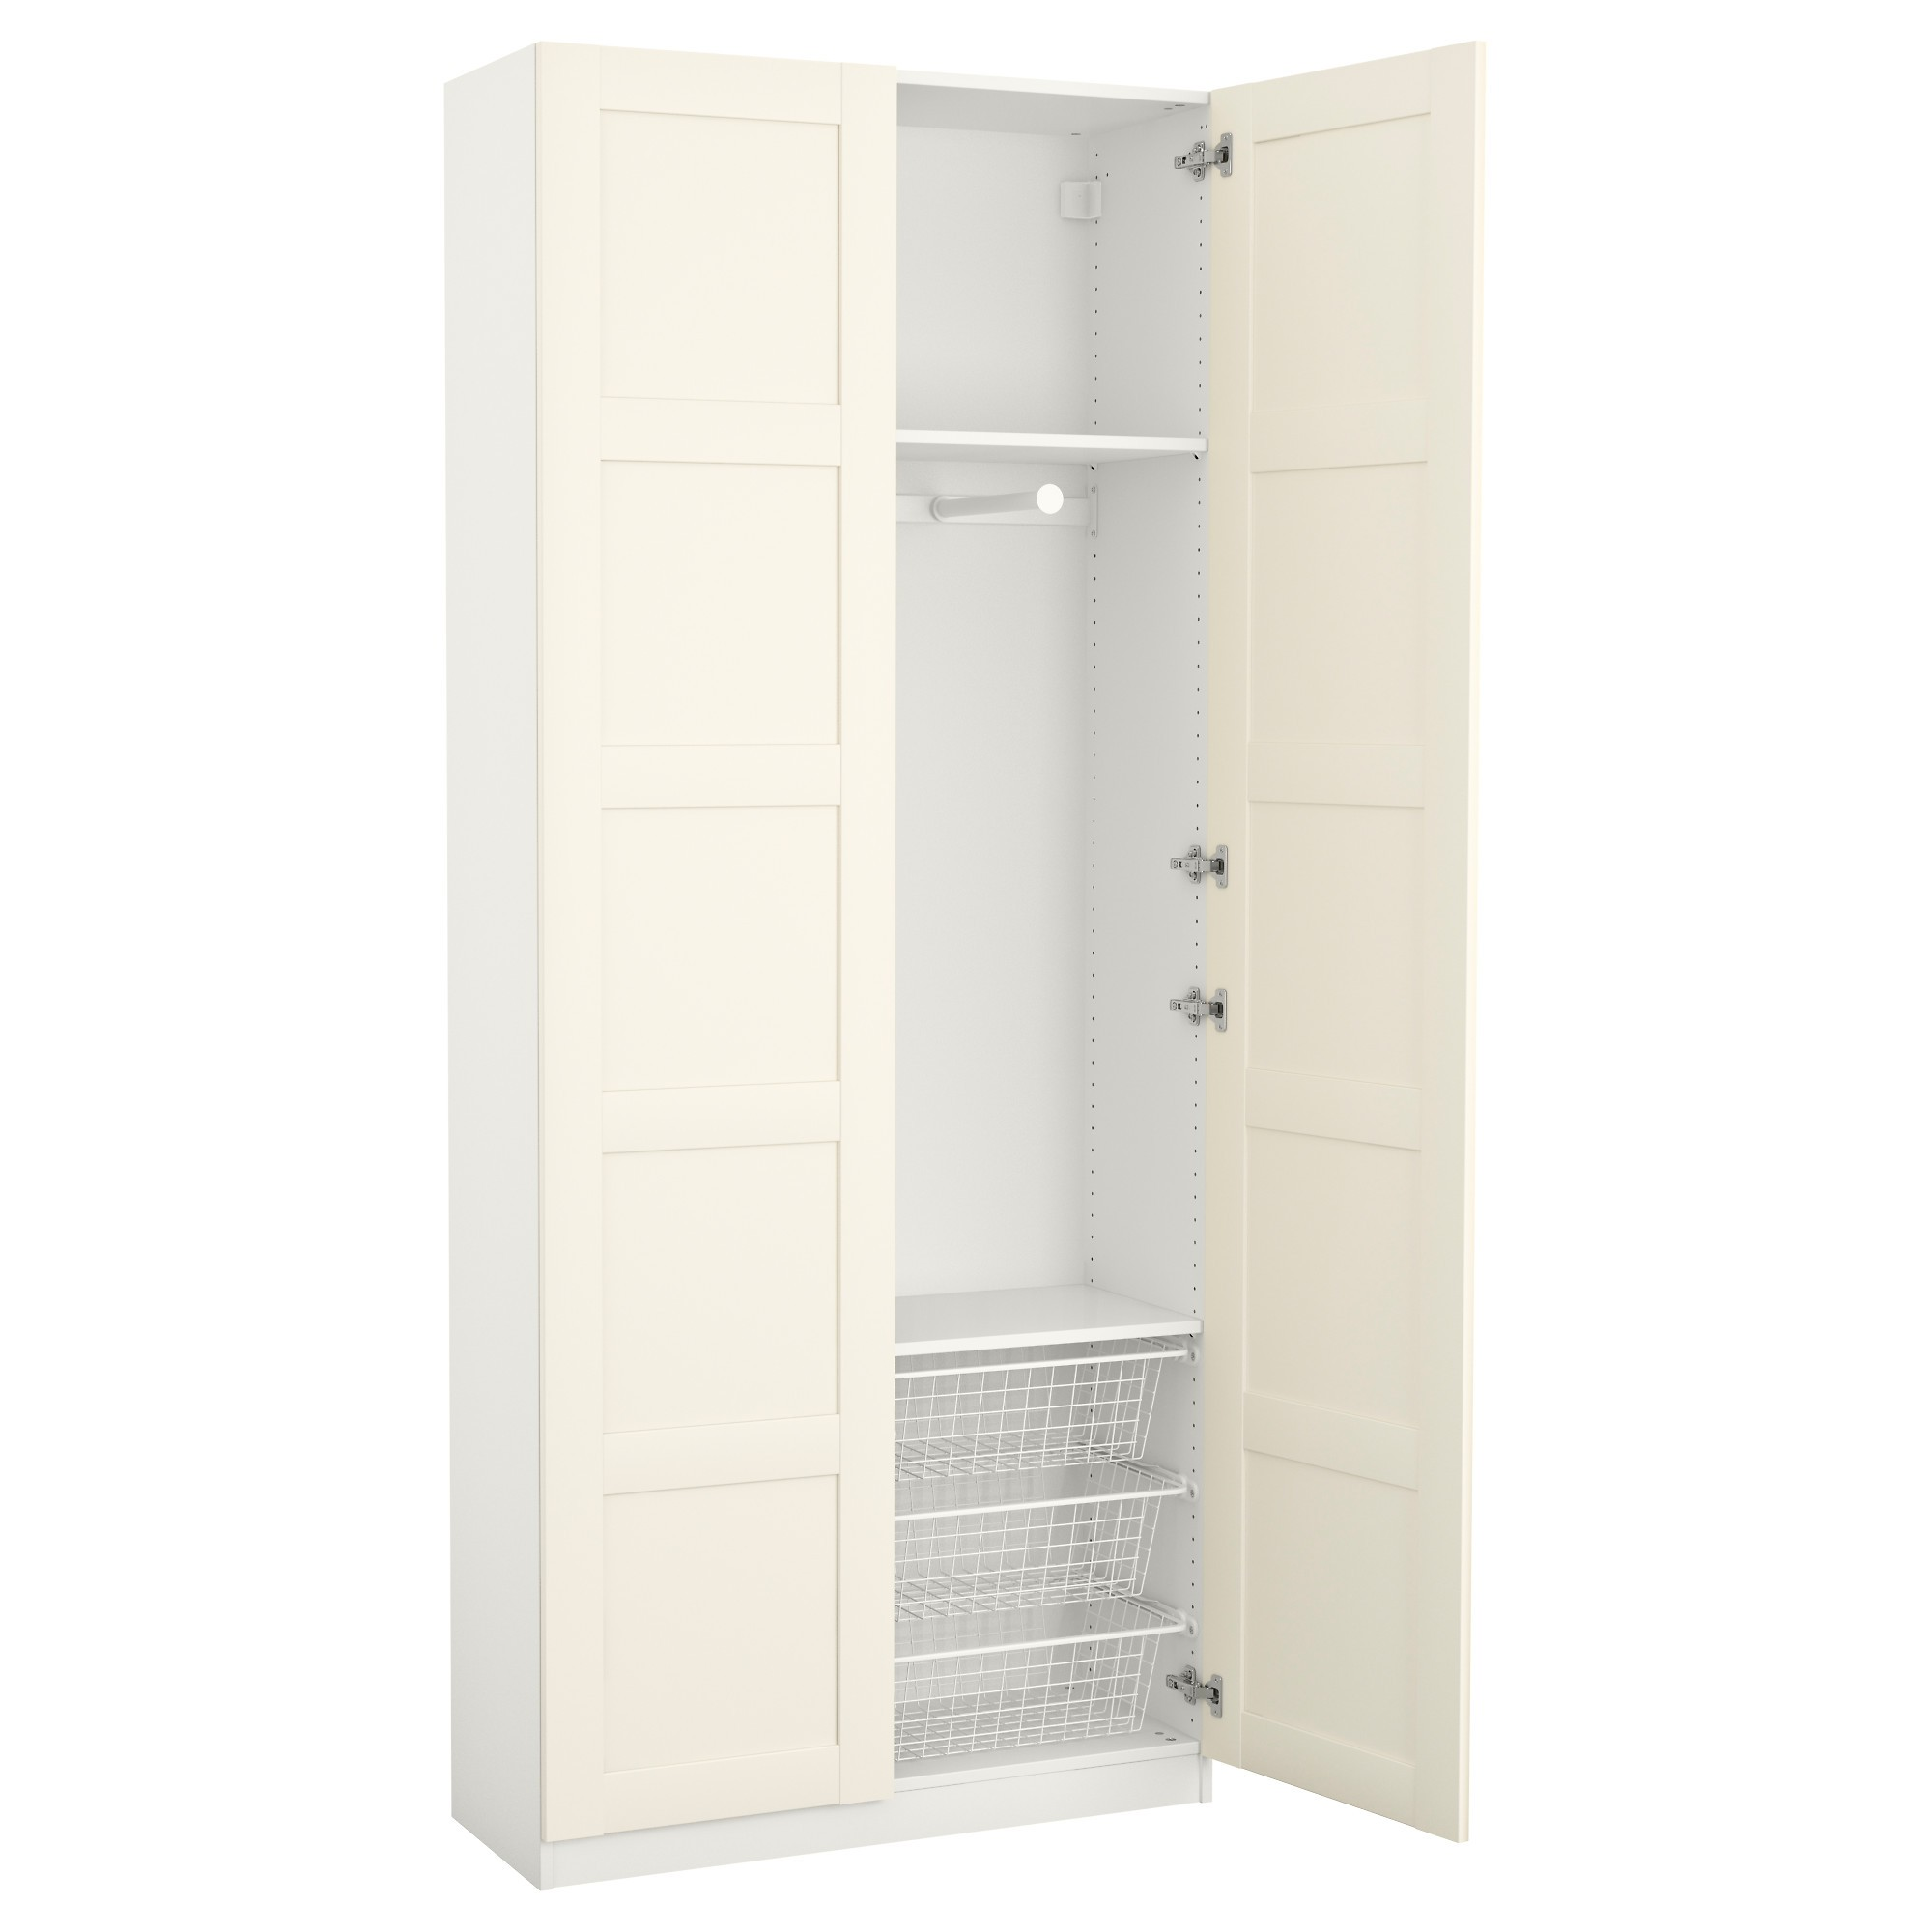 armoire 2 portes blanche ikea armoire id es de. Black Bedroom Furniture Sets. Home Design Ideas